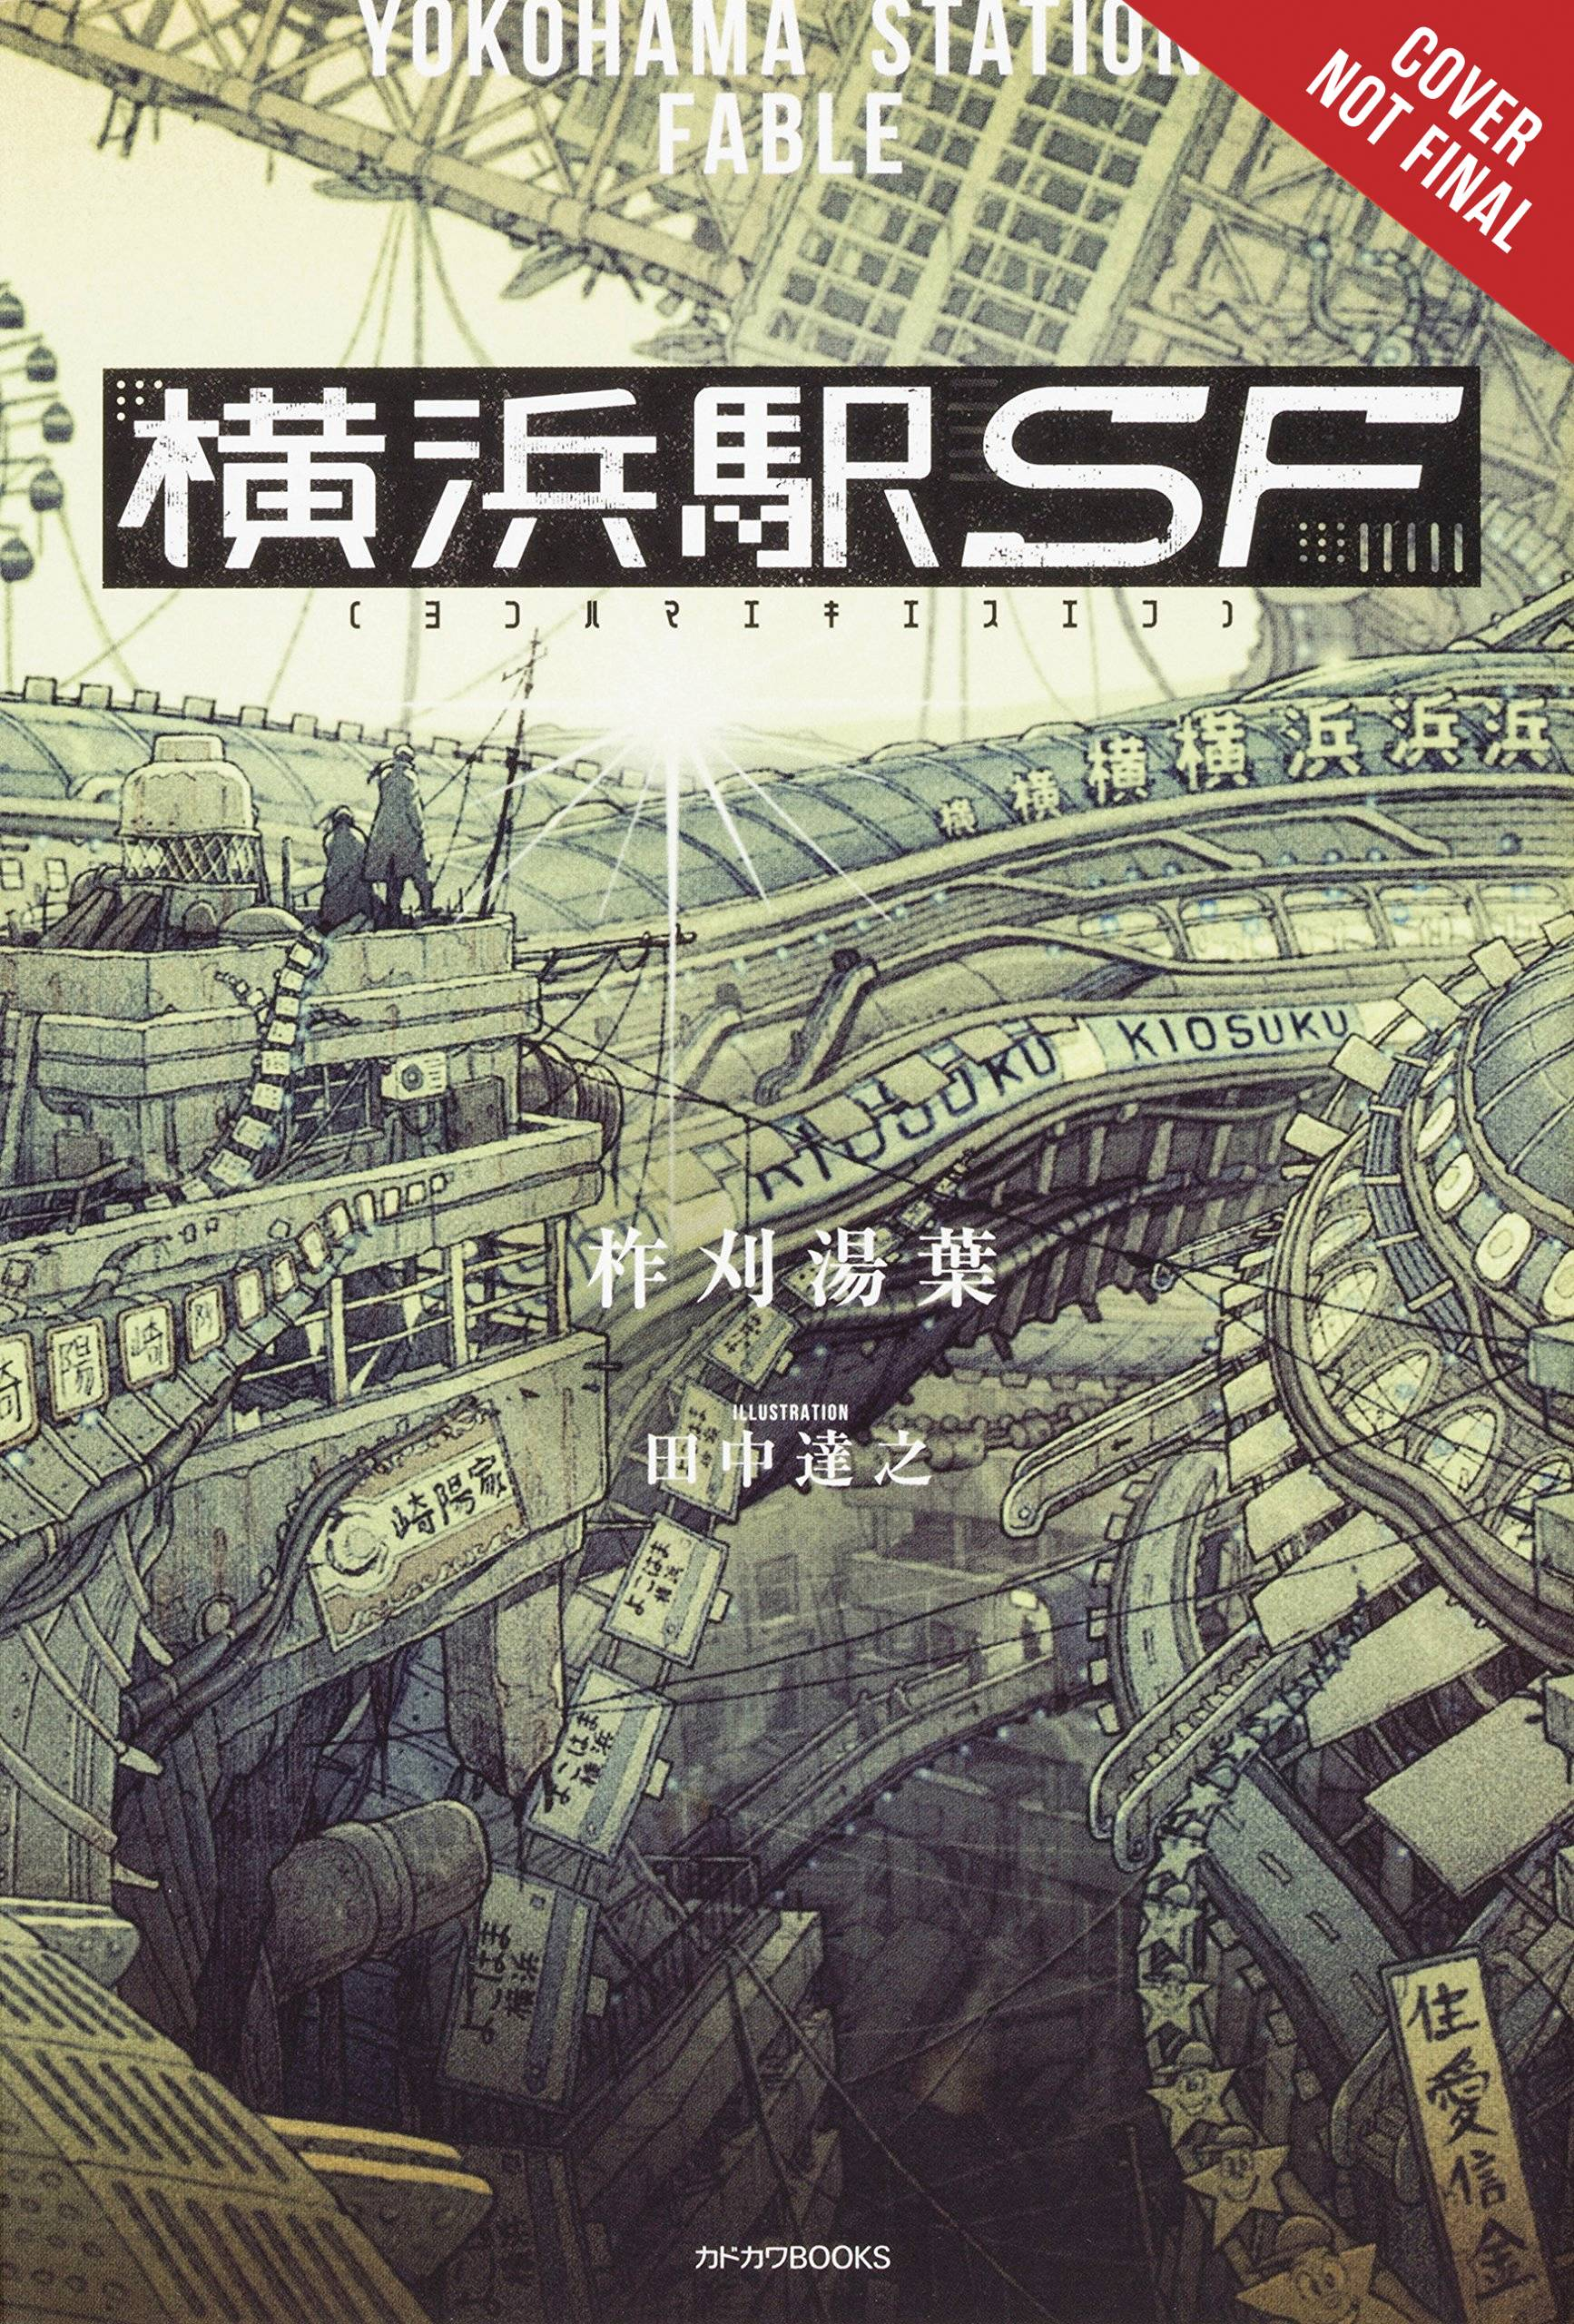 YOKOHAMA STATION SF NOVEL SC